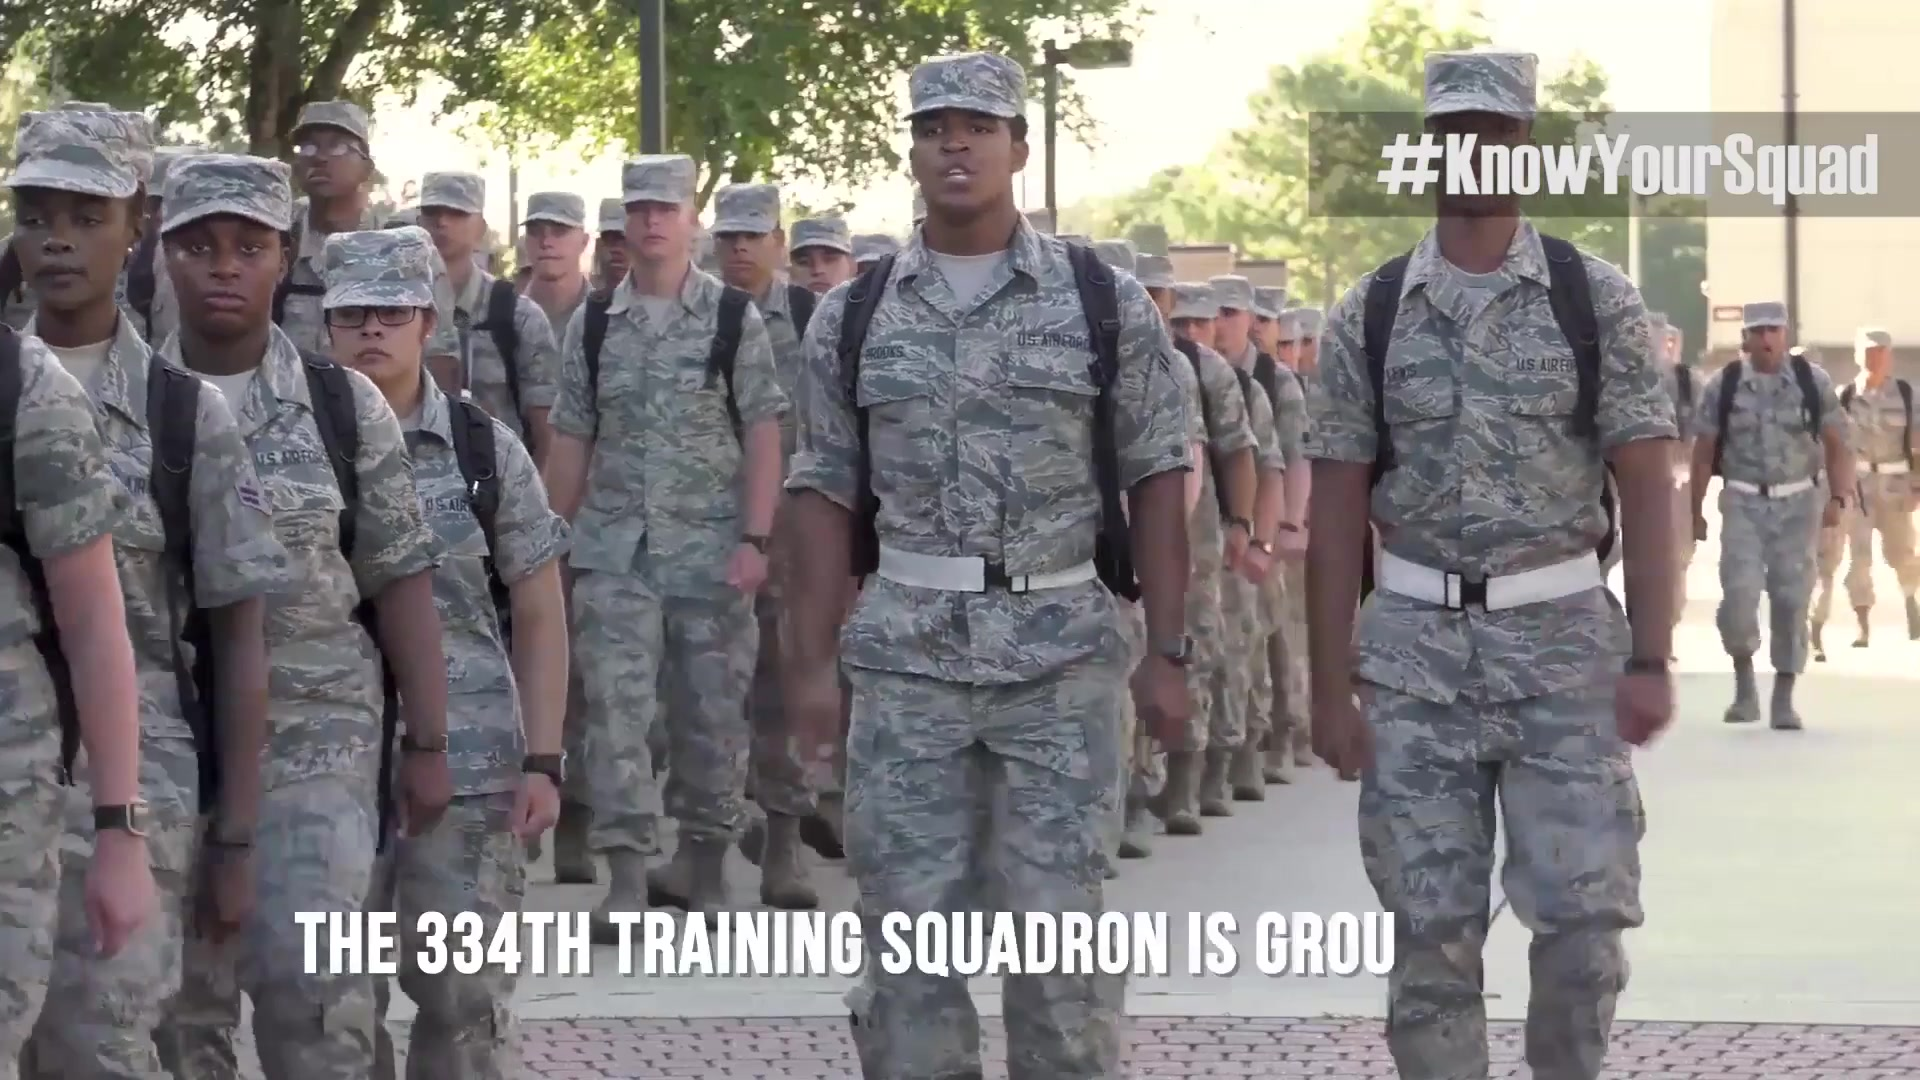 The 334th Training Squadron is responsible for training various components of the command and control functions within the Air Force. They are a vital step in developing the U.S. Air Force's advanced capabilities.